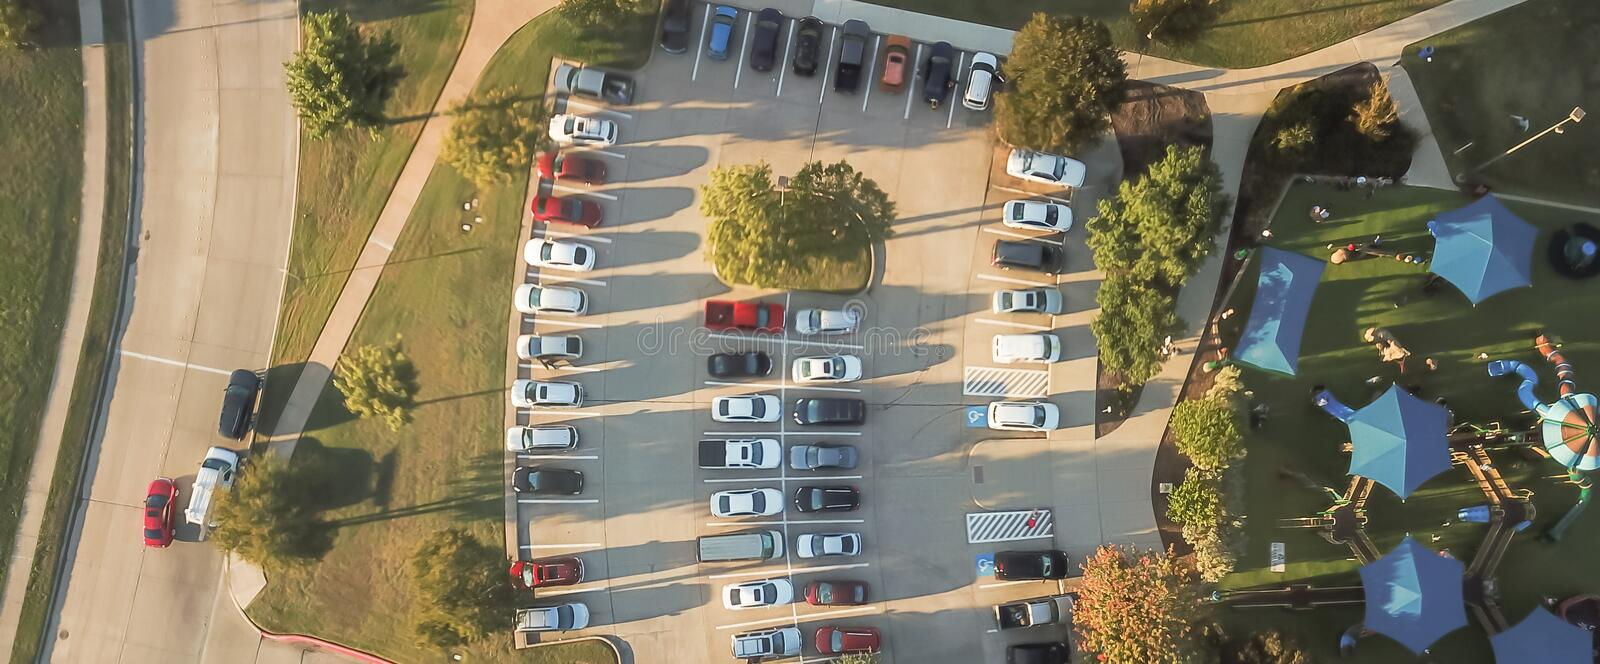 Panoramic top view crowed parking lots near community playground in Texas, America royalty free stock photo